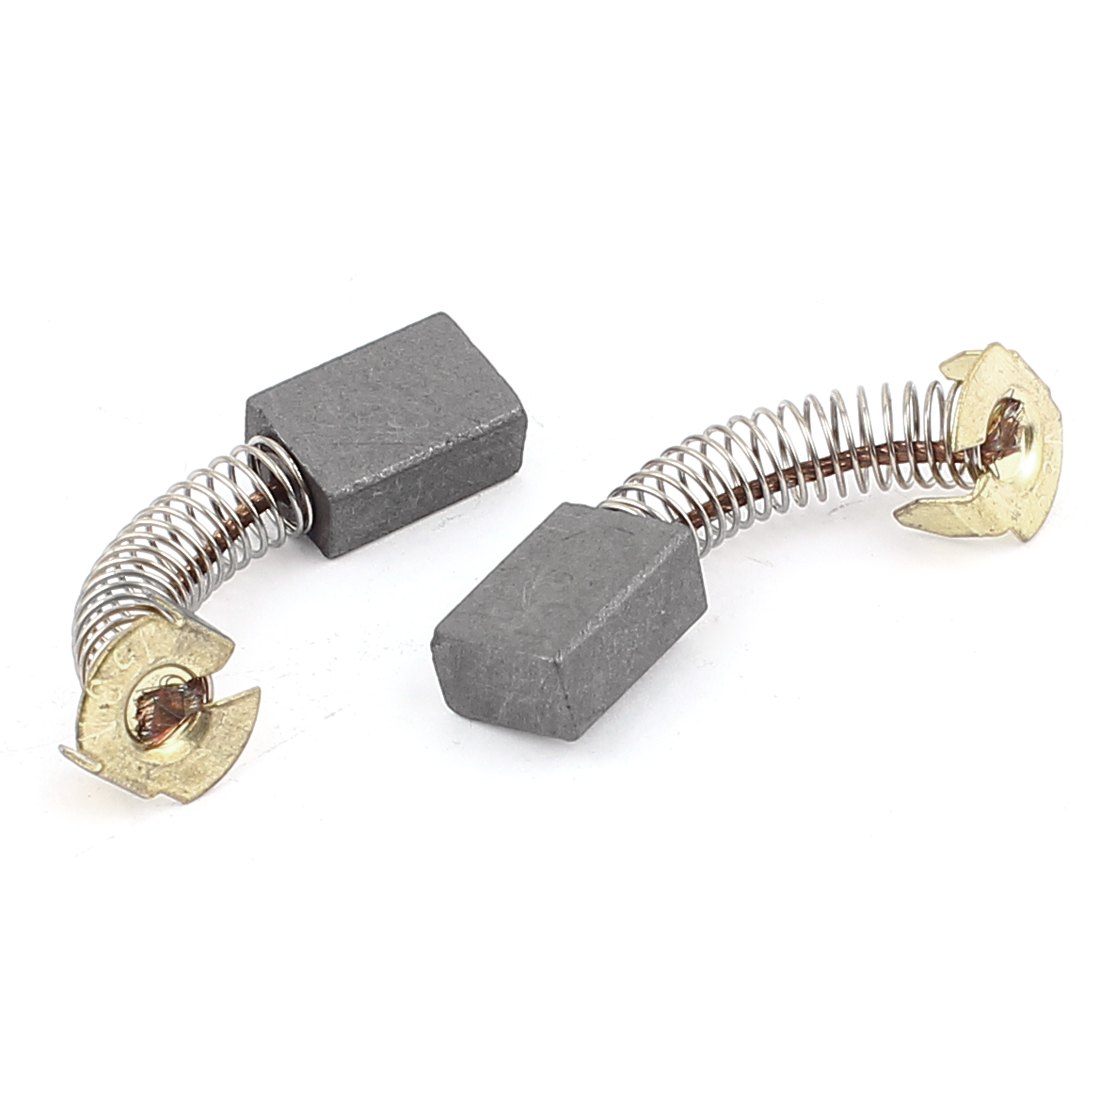 Pair Replacement Motor Carbon Brushes 16mm x 11mm x 7mm for Electric Motors